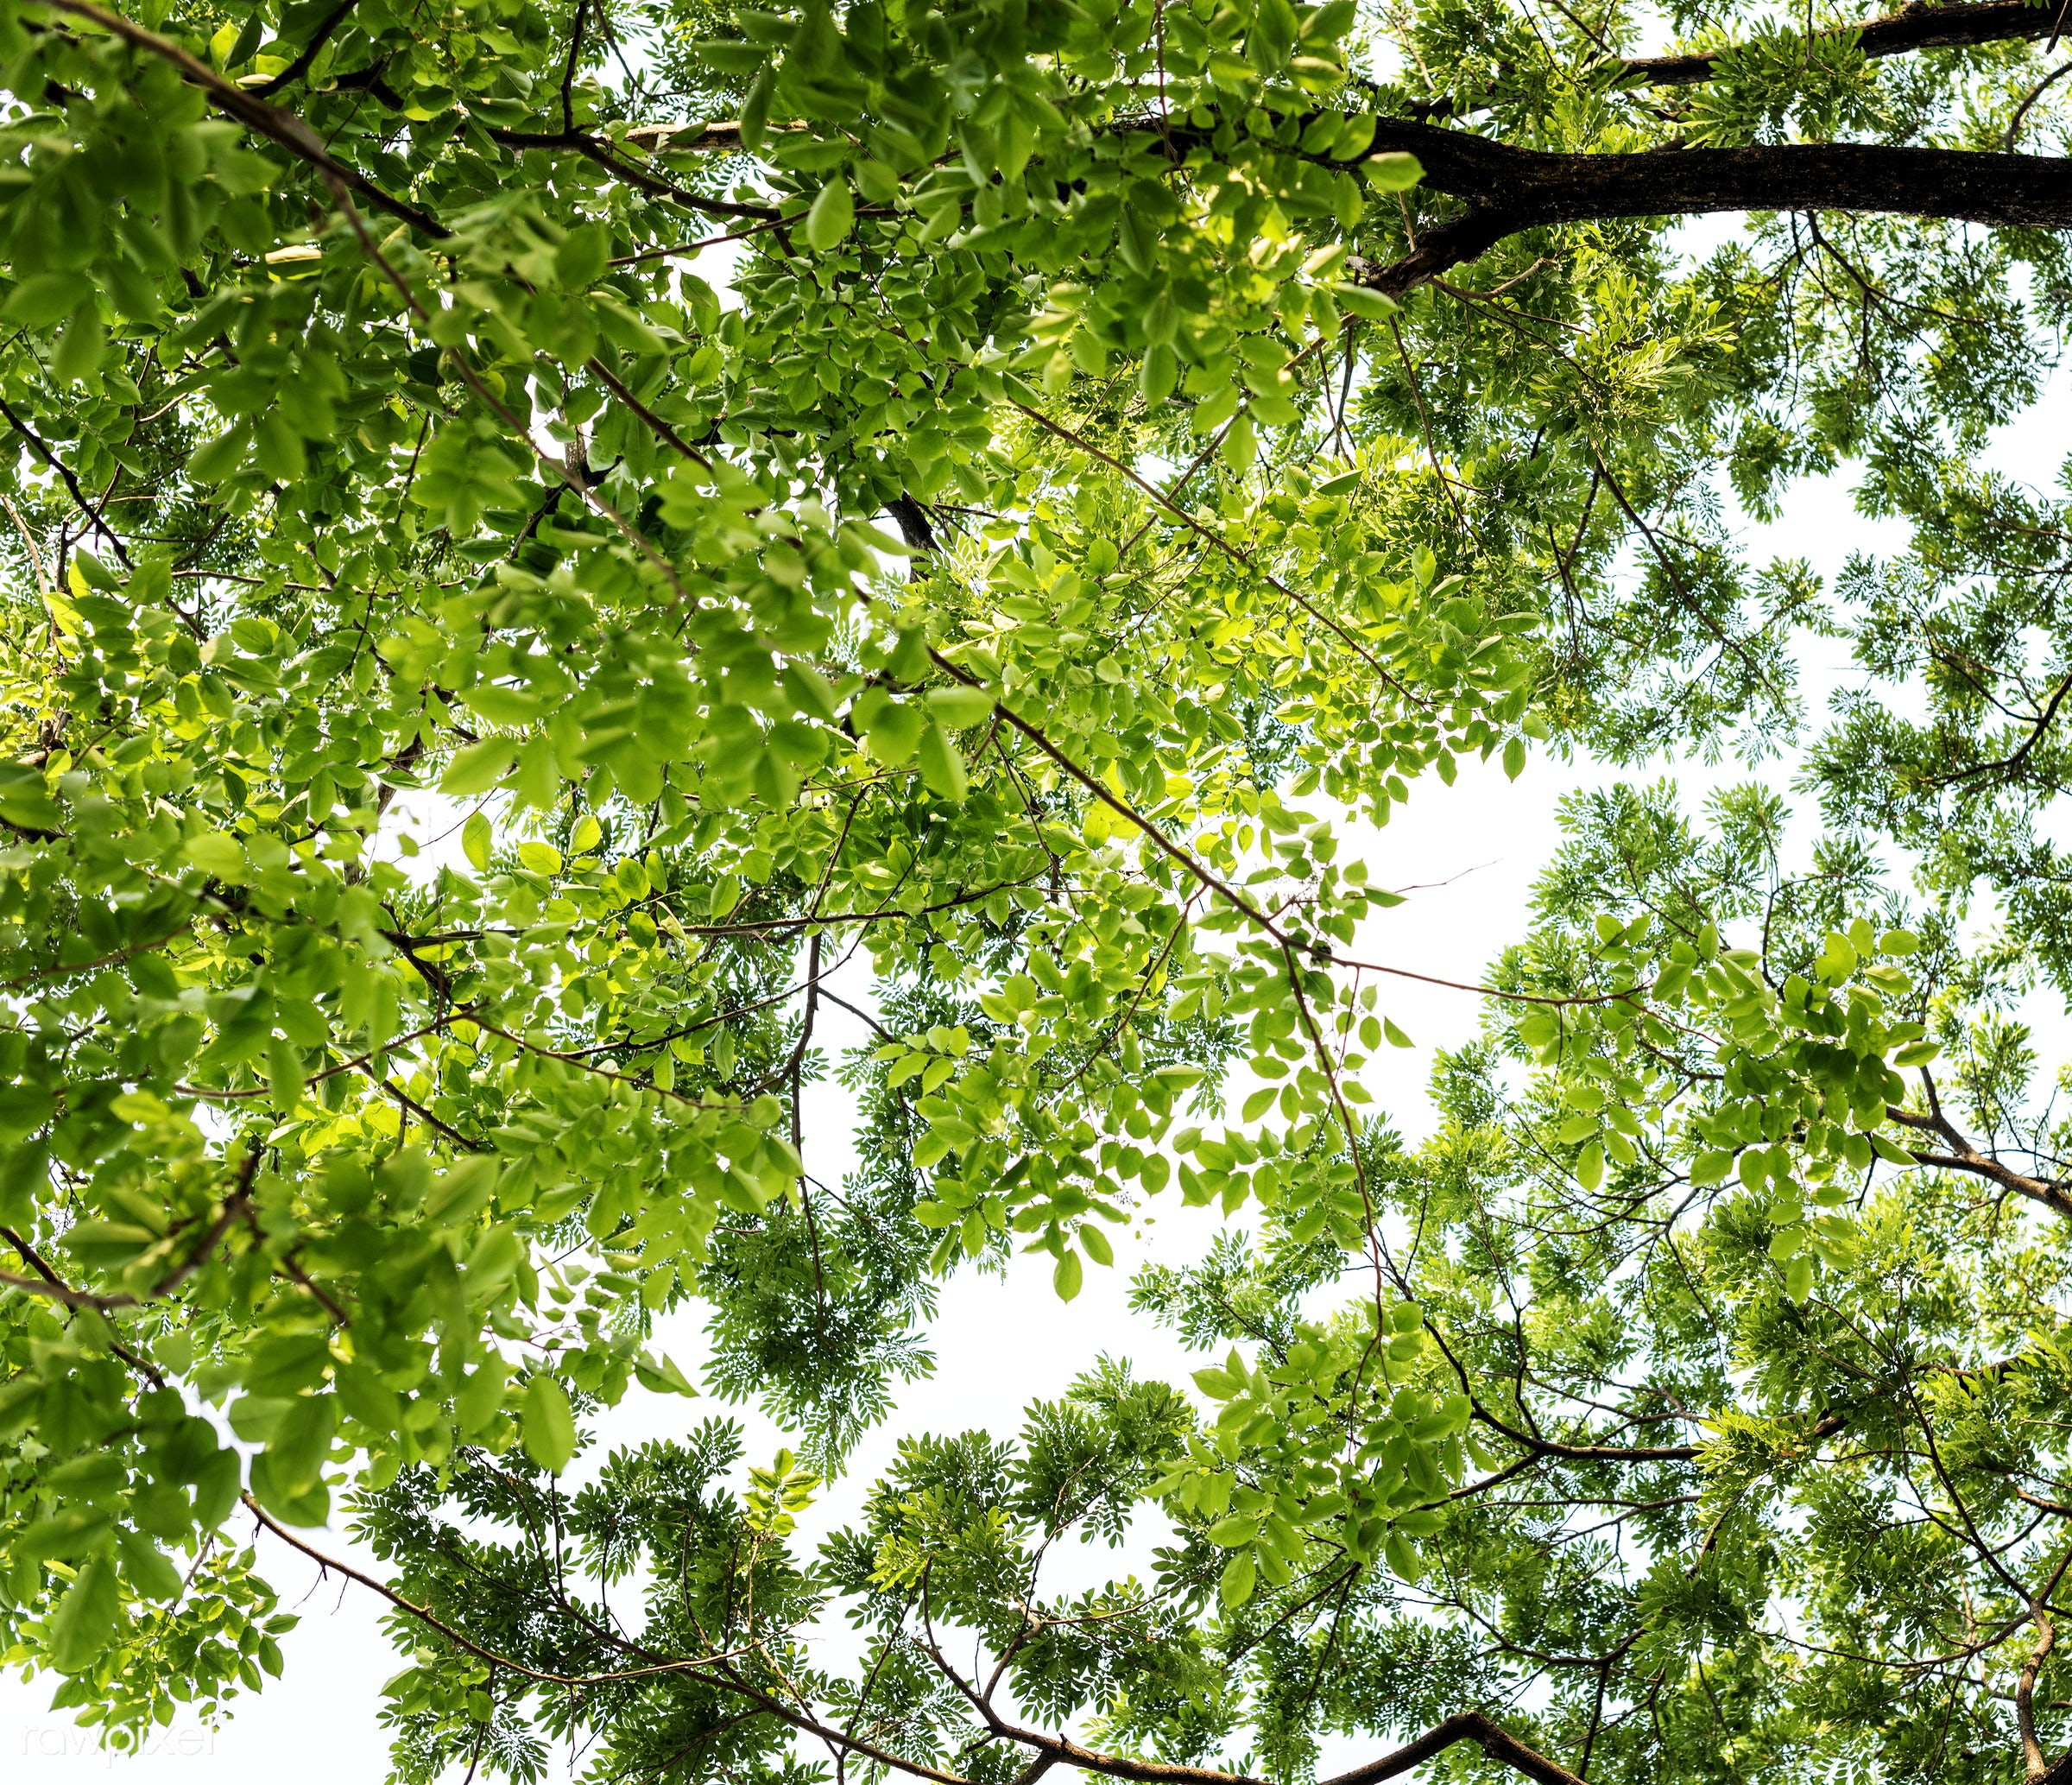 The tree tops in forest - spring, vacation, leaf, natural, serene, attraction, background, beauty in nature, branch,...